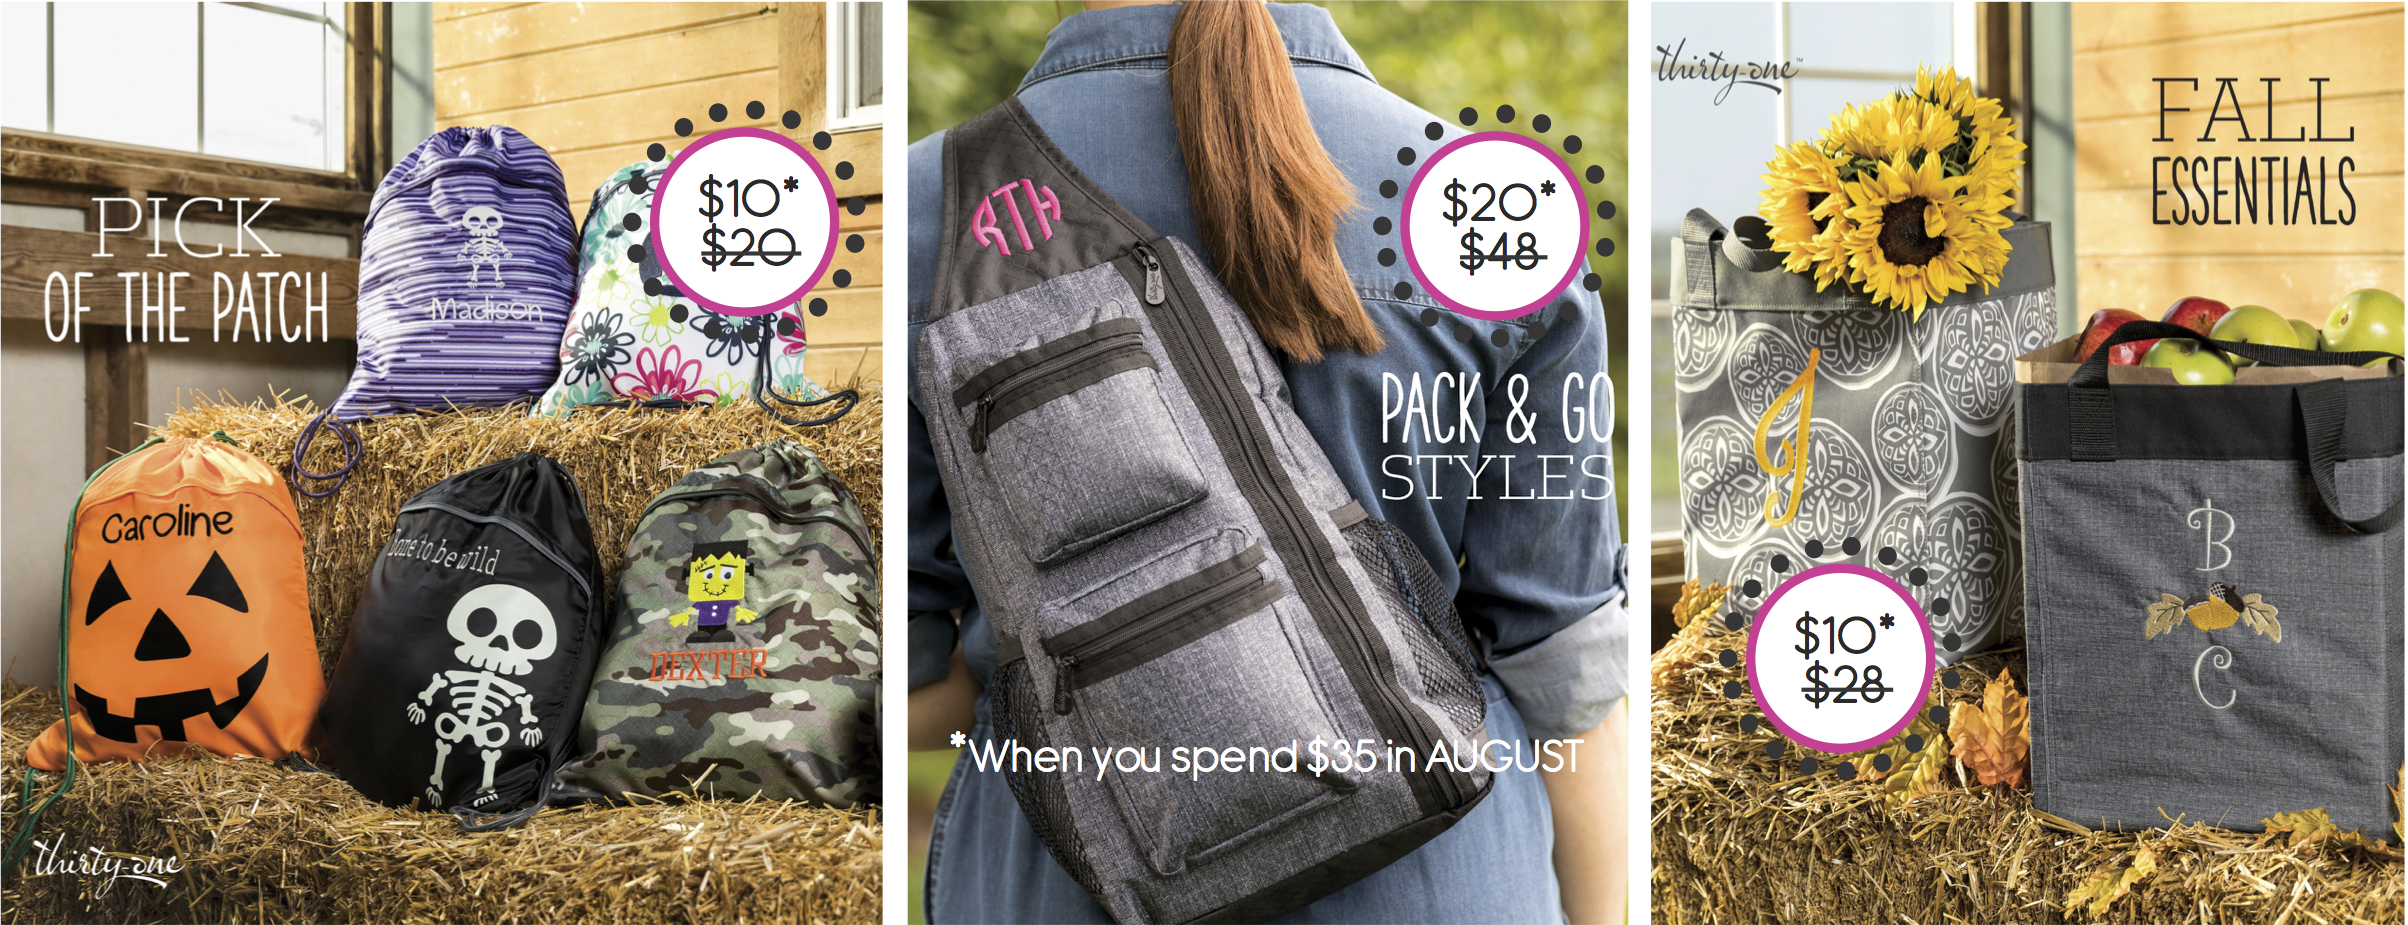 Thirty One Gifts August Special